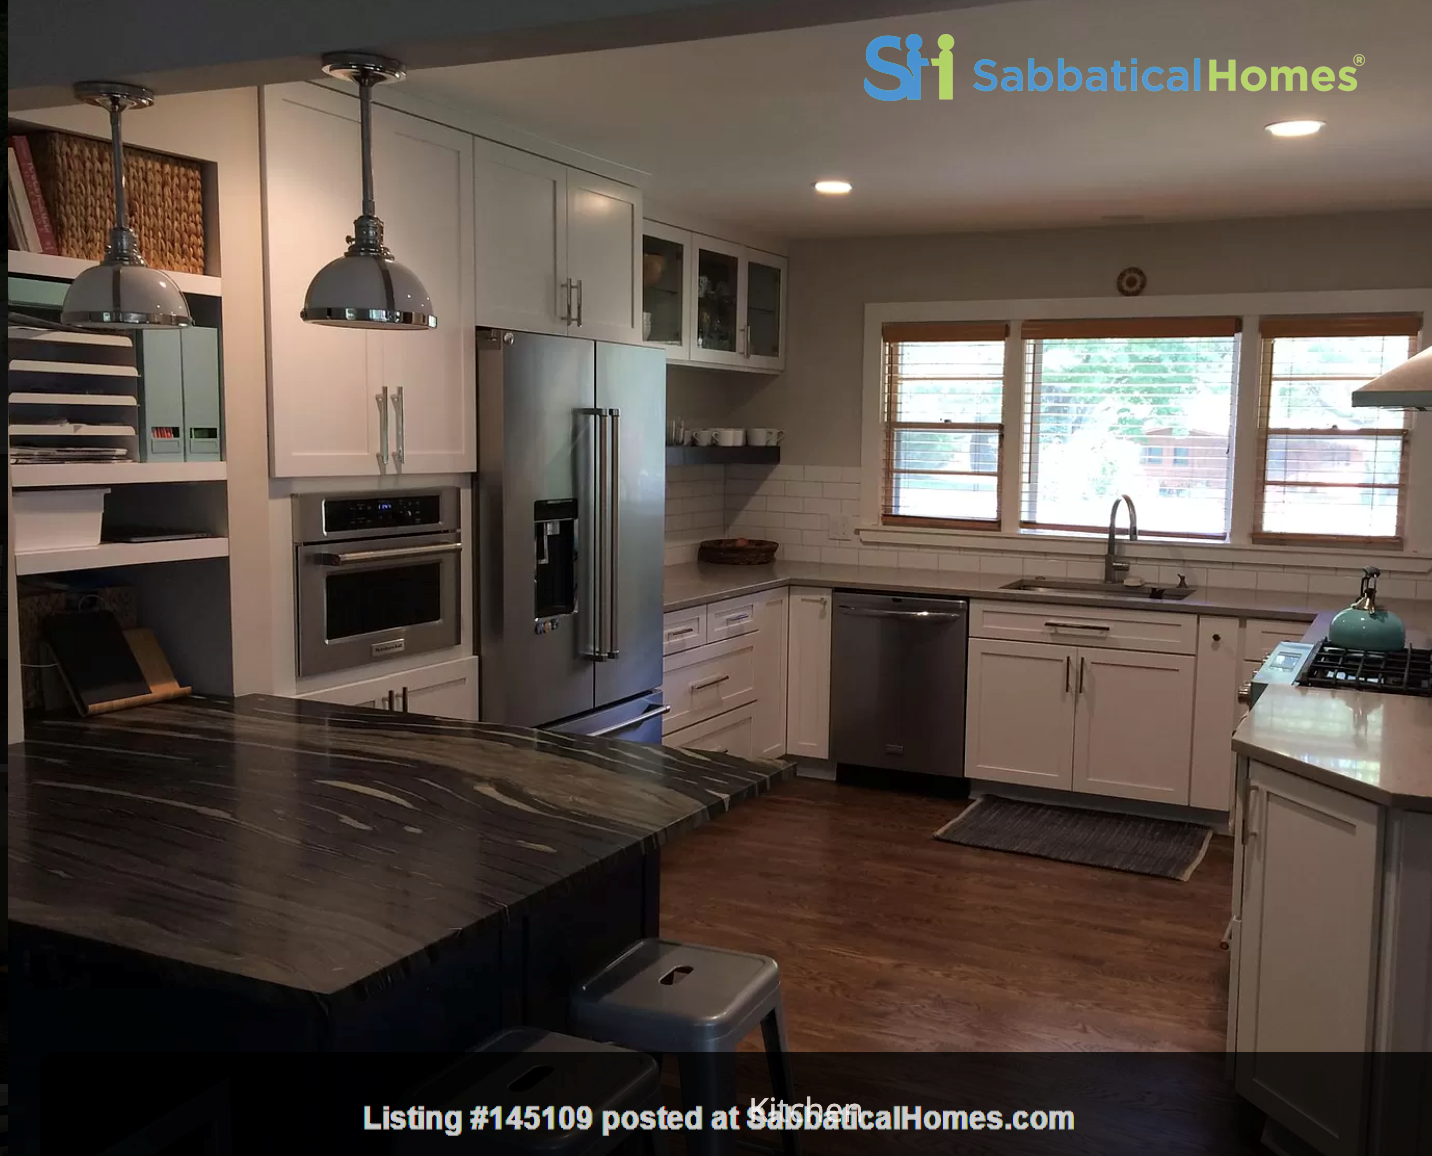 Remodeled quiet home, walk to University of Michigan, Arb, school, downtown Home Rental in Ann Arbor, Michigan, United States 1